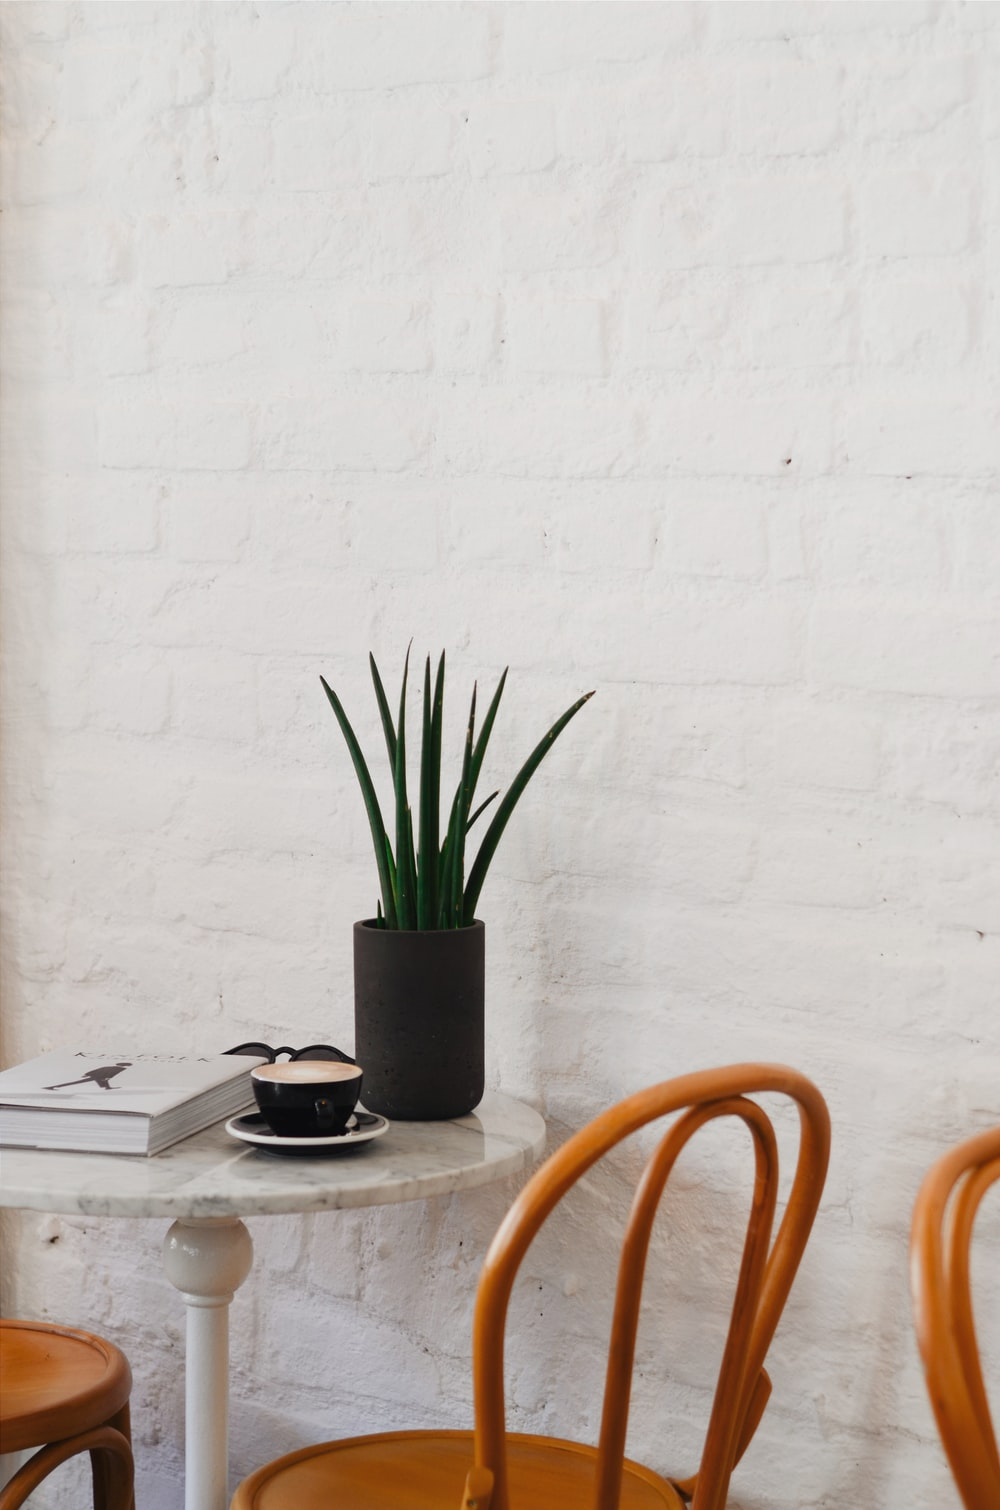 pot of plant and cup on table